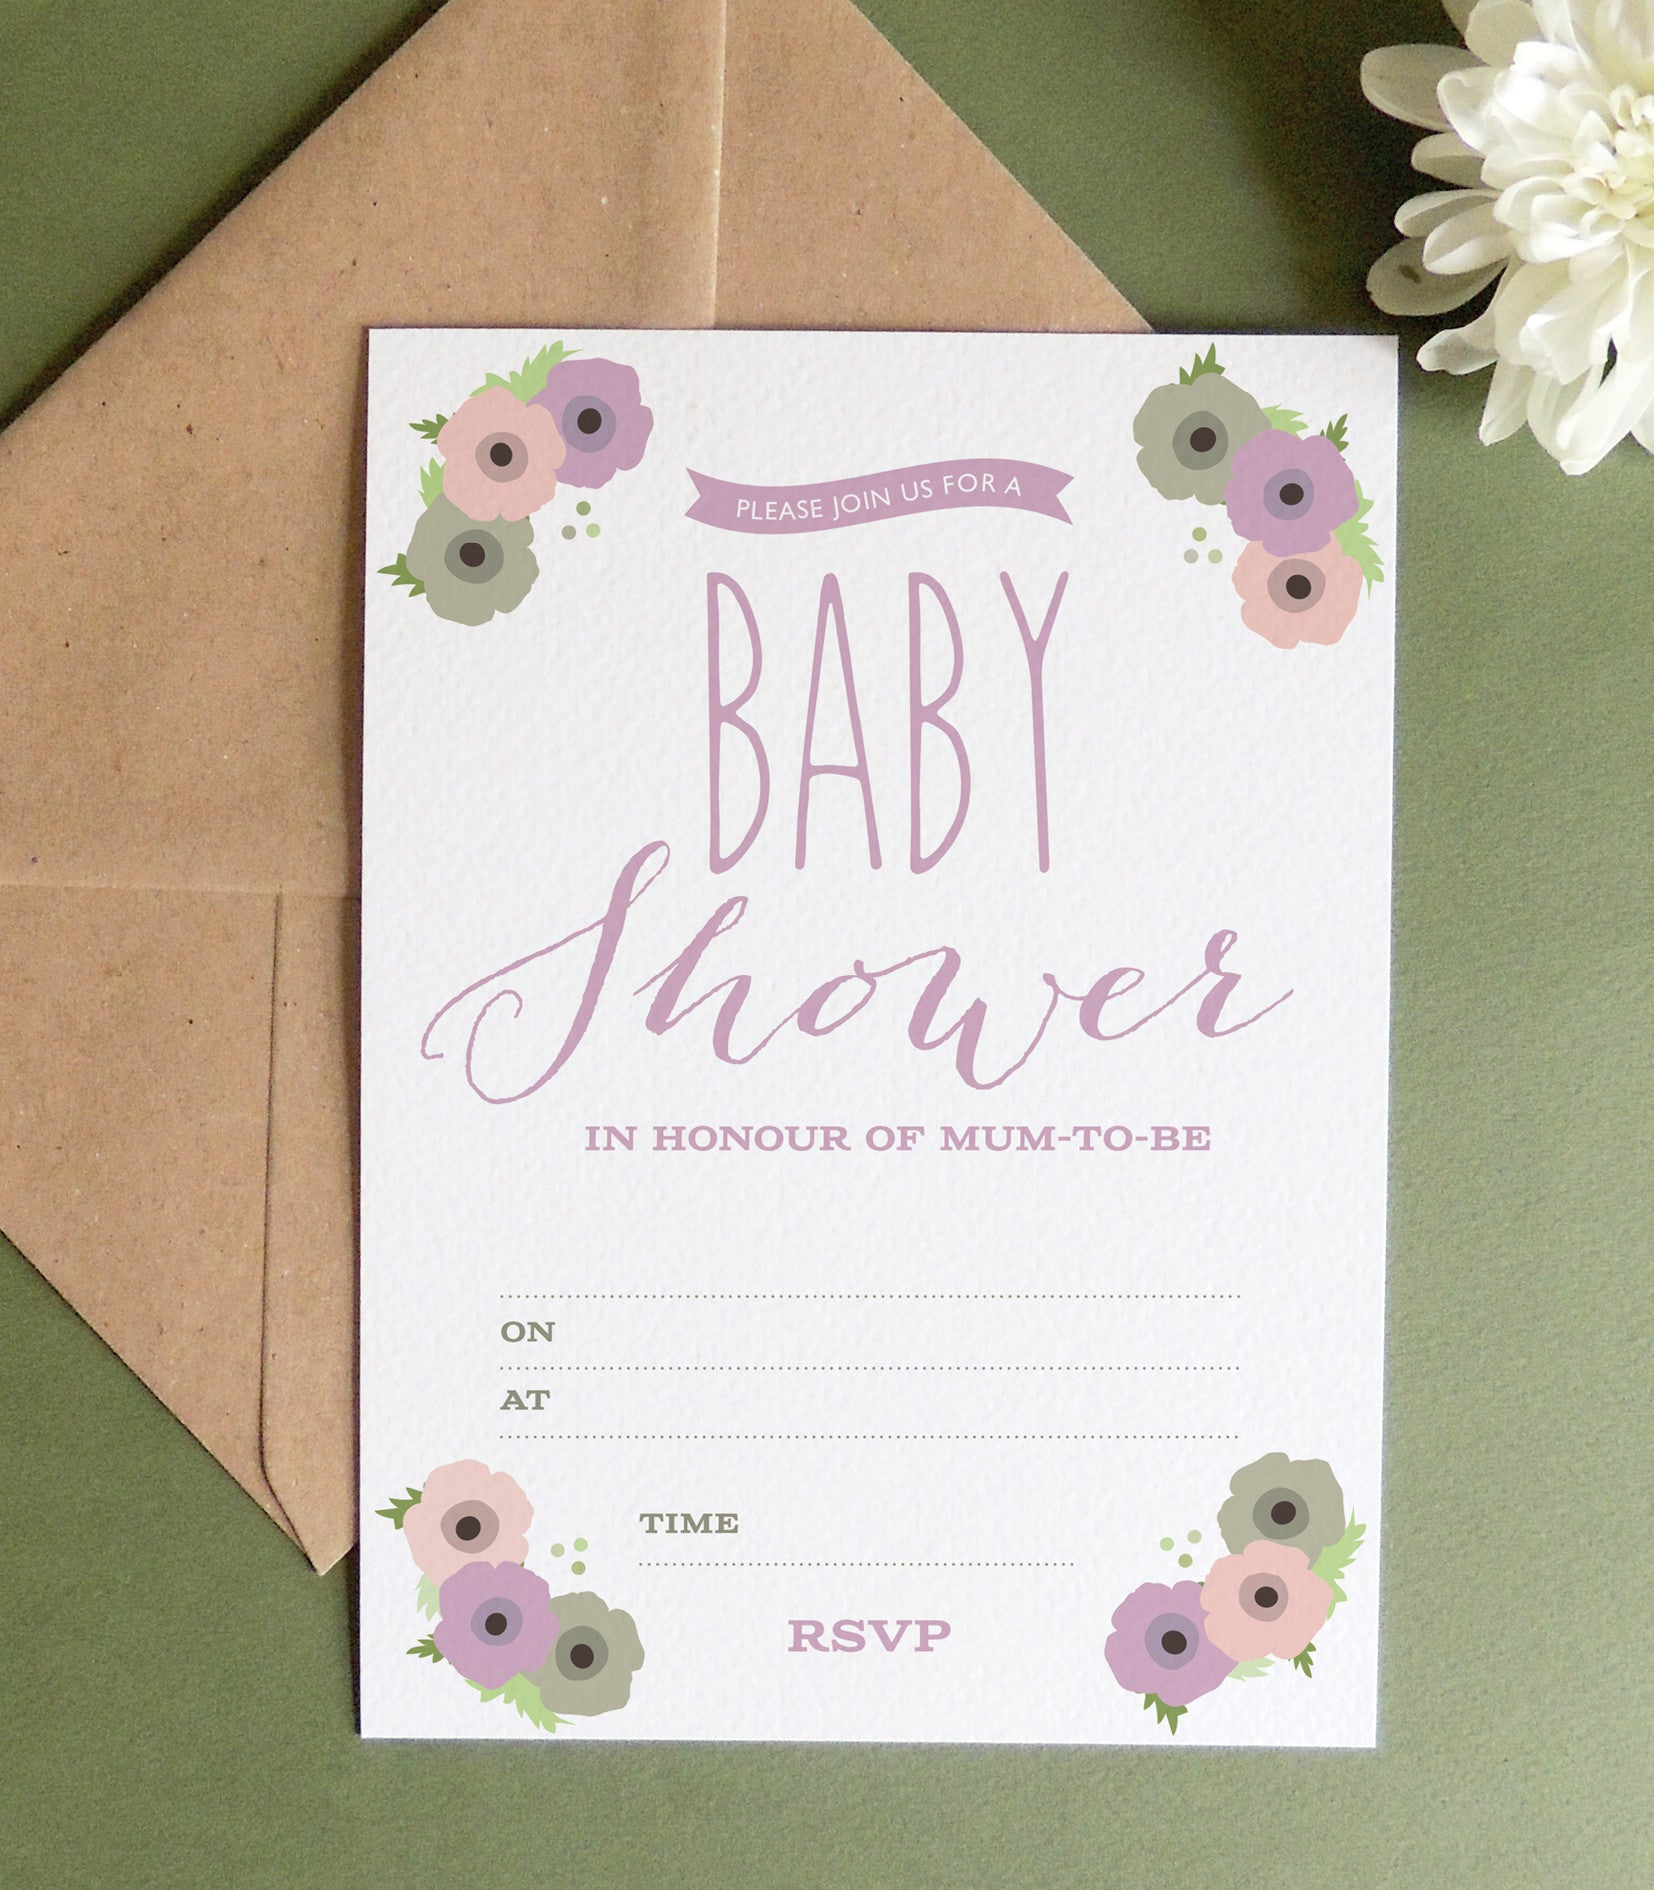 12 X Poppy Baby Shower Invitations - Project Pretty  - 2